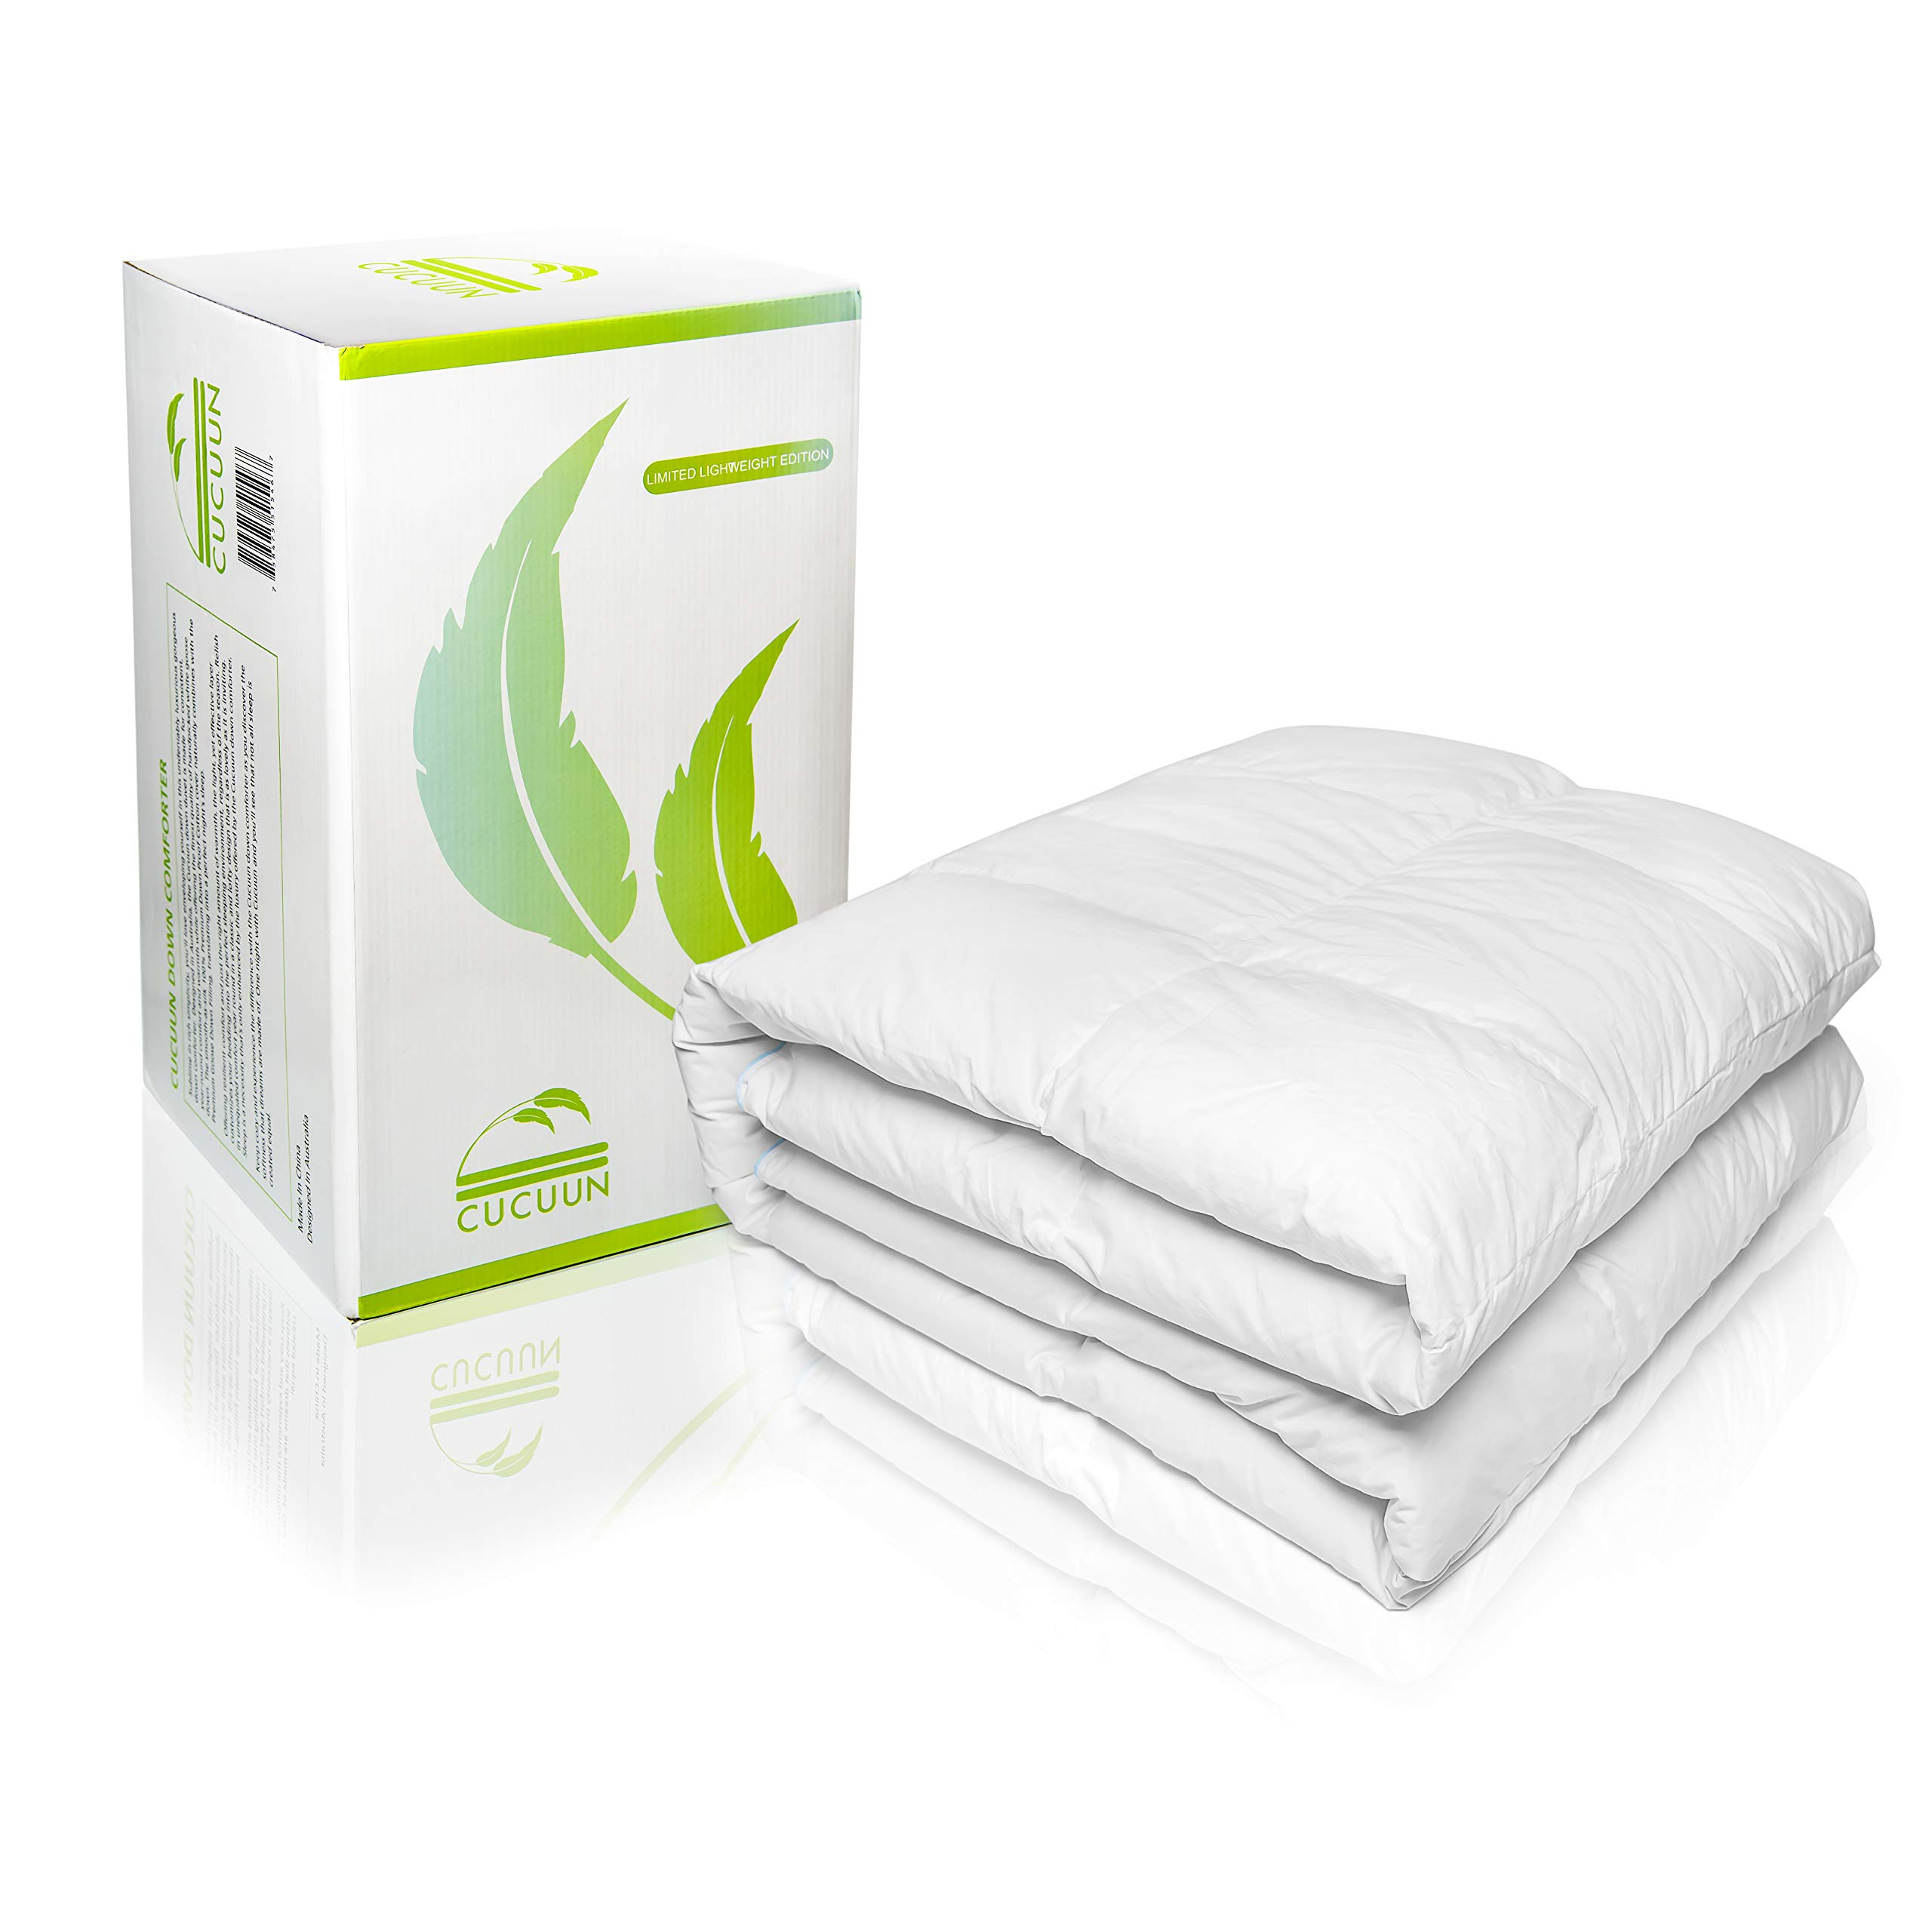 Cucuun Summer Lightweight Goose Down Comforter King Size Duvet Insert Solid White 1200 Thread Count 750+ Fill Power 100% Egyptian Cotton Shell Hypo-allergenic Down by Cucuun (Image #3)